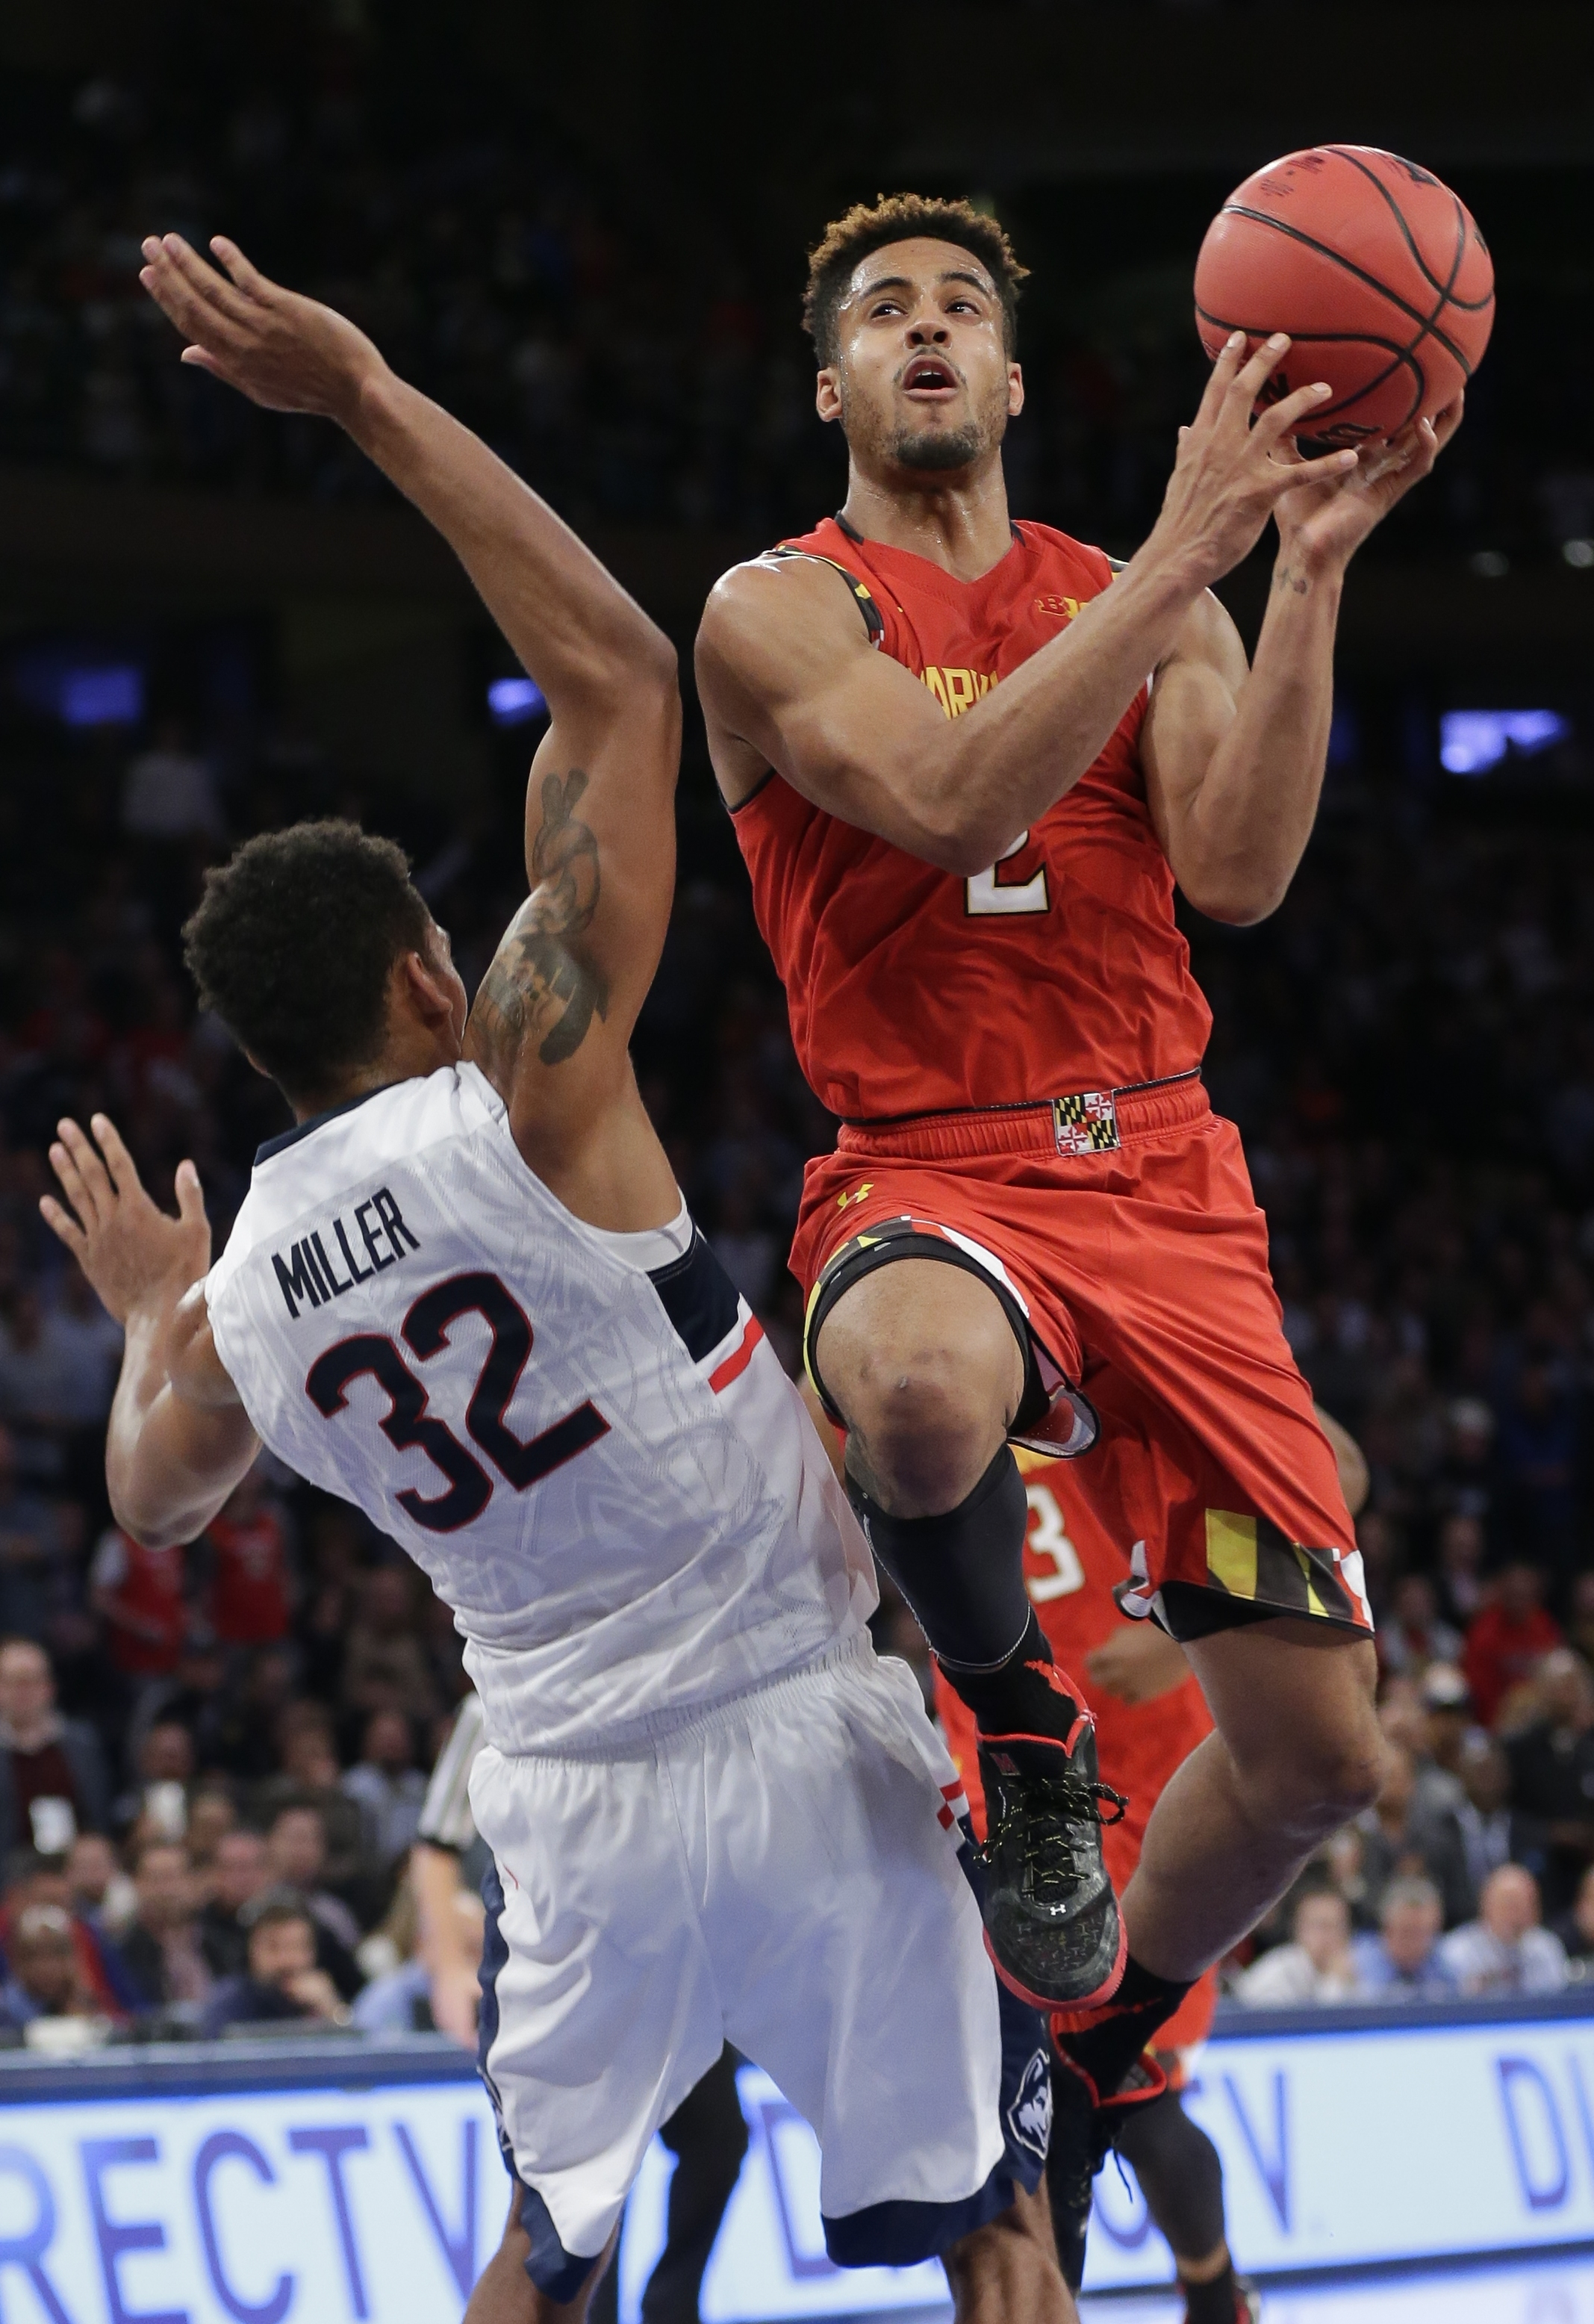 Maryland's Melo Trimble (2) drives past Connecticut's Shonn Miller (32) during the second half of an NCAA college basketball game, Tuesday, Dec. 8, 2015, in New York. Maryland won 76-66. (AP Photo/Frank Franklin II)